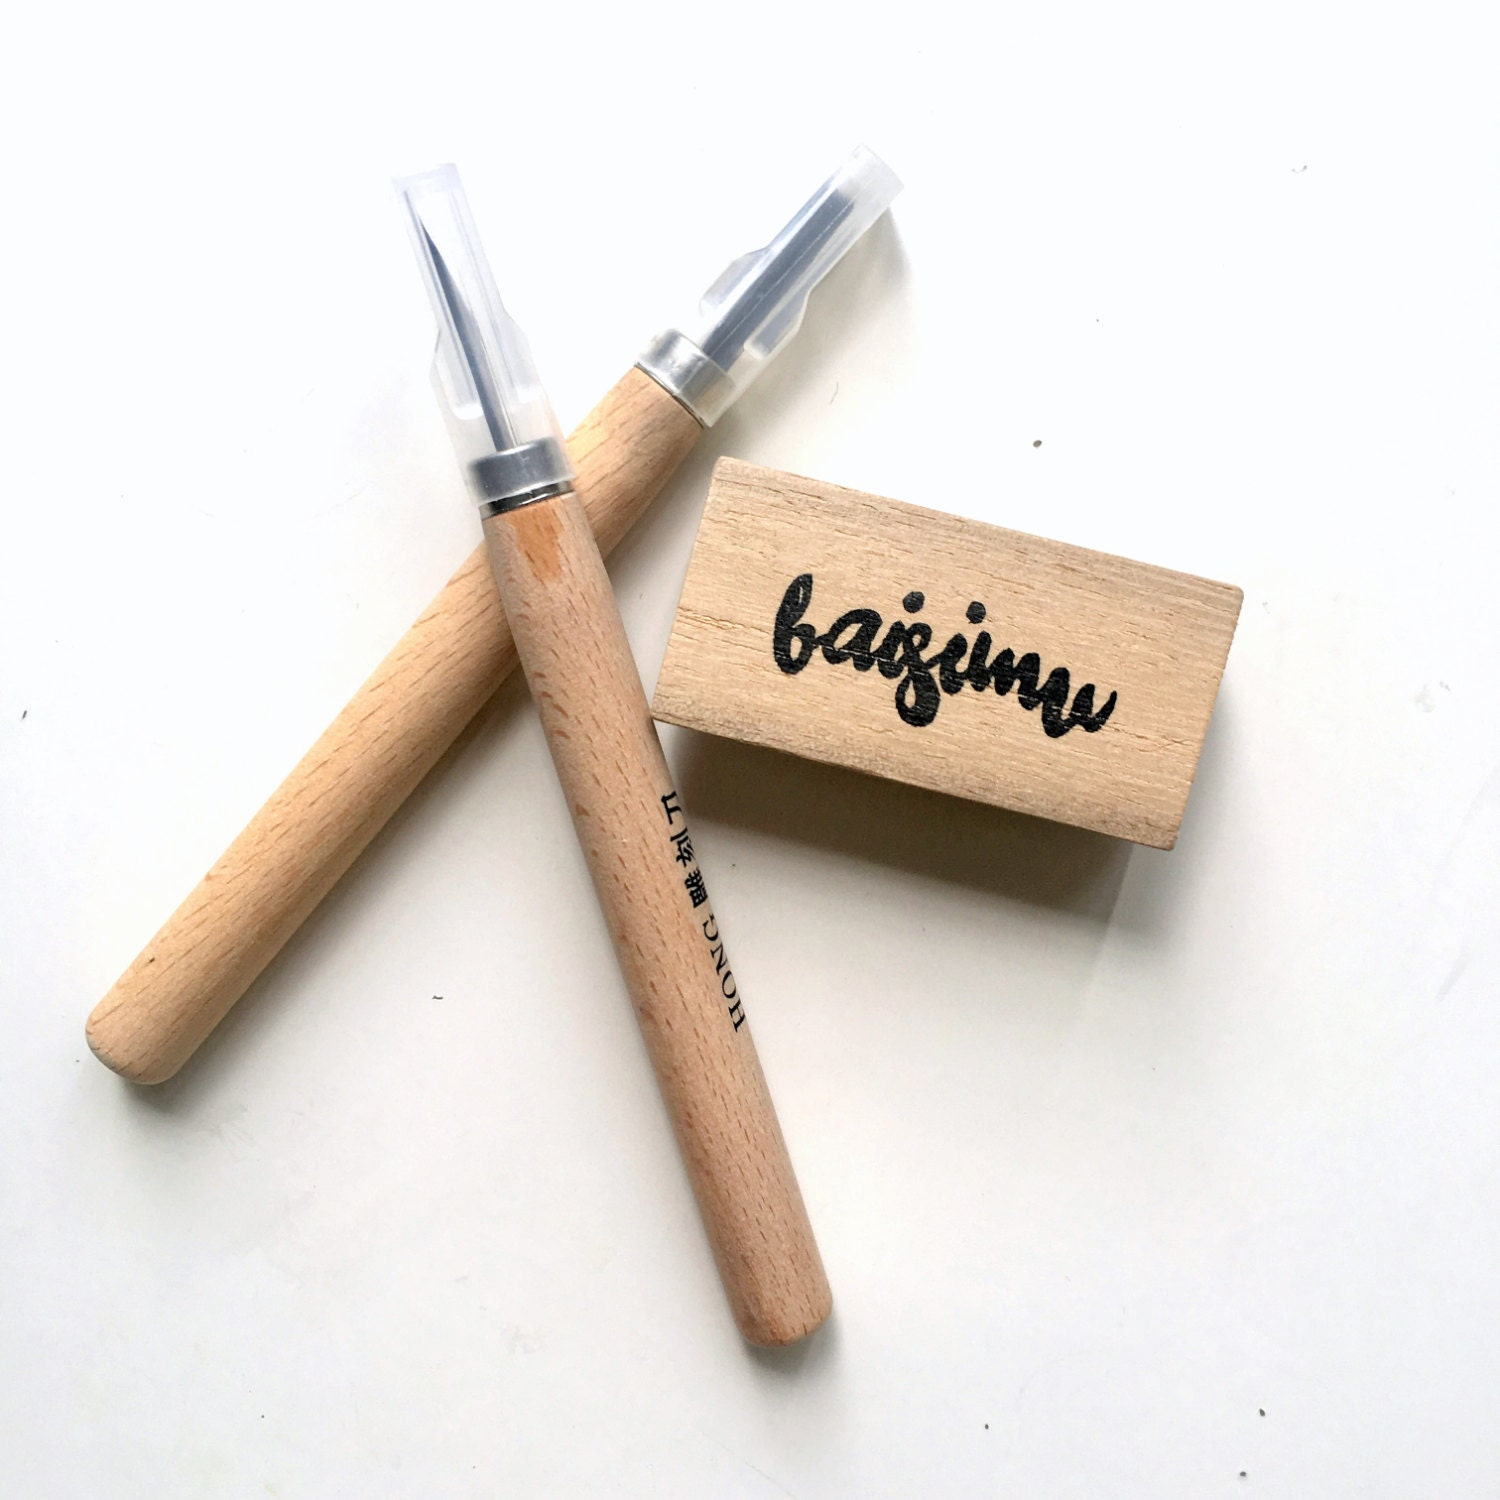 Make it yourself rubber stamp carving set for beginners